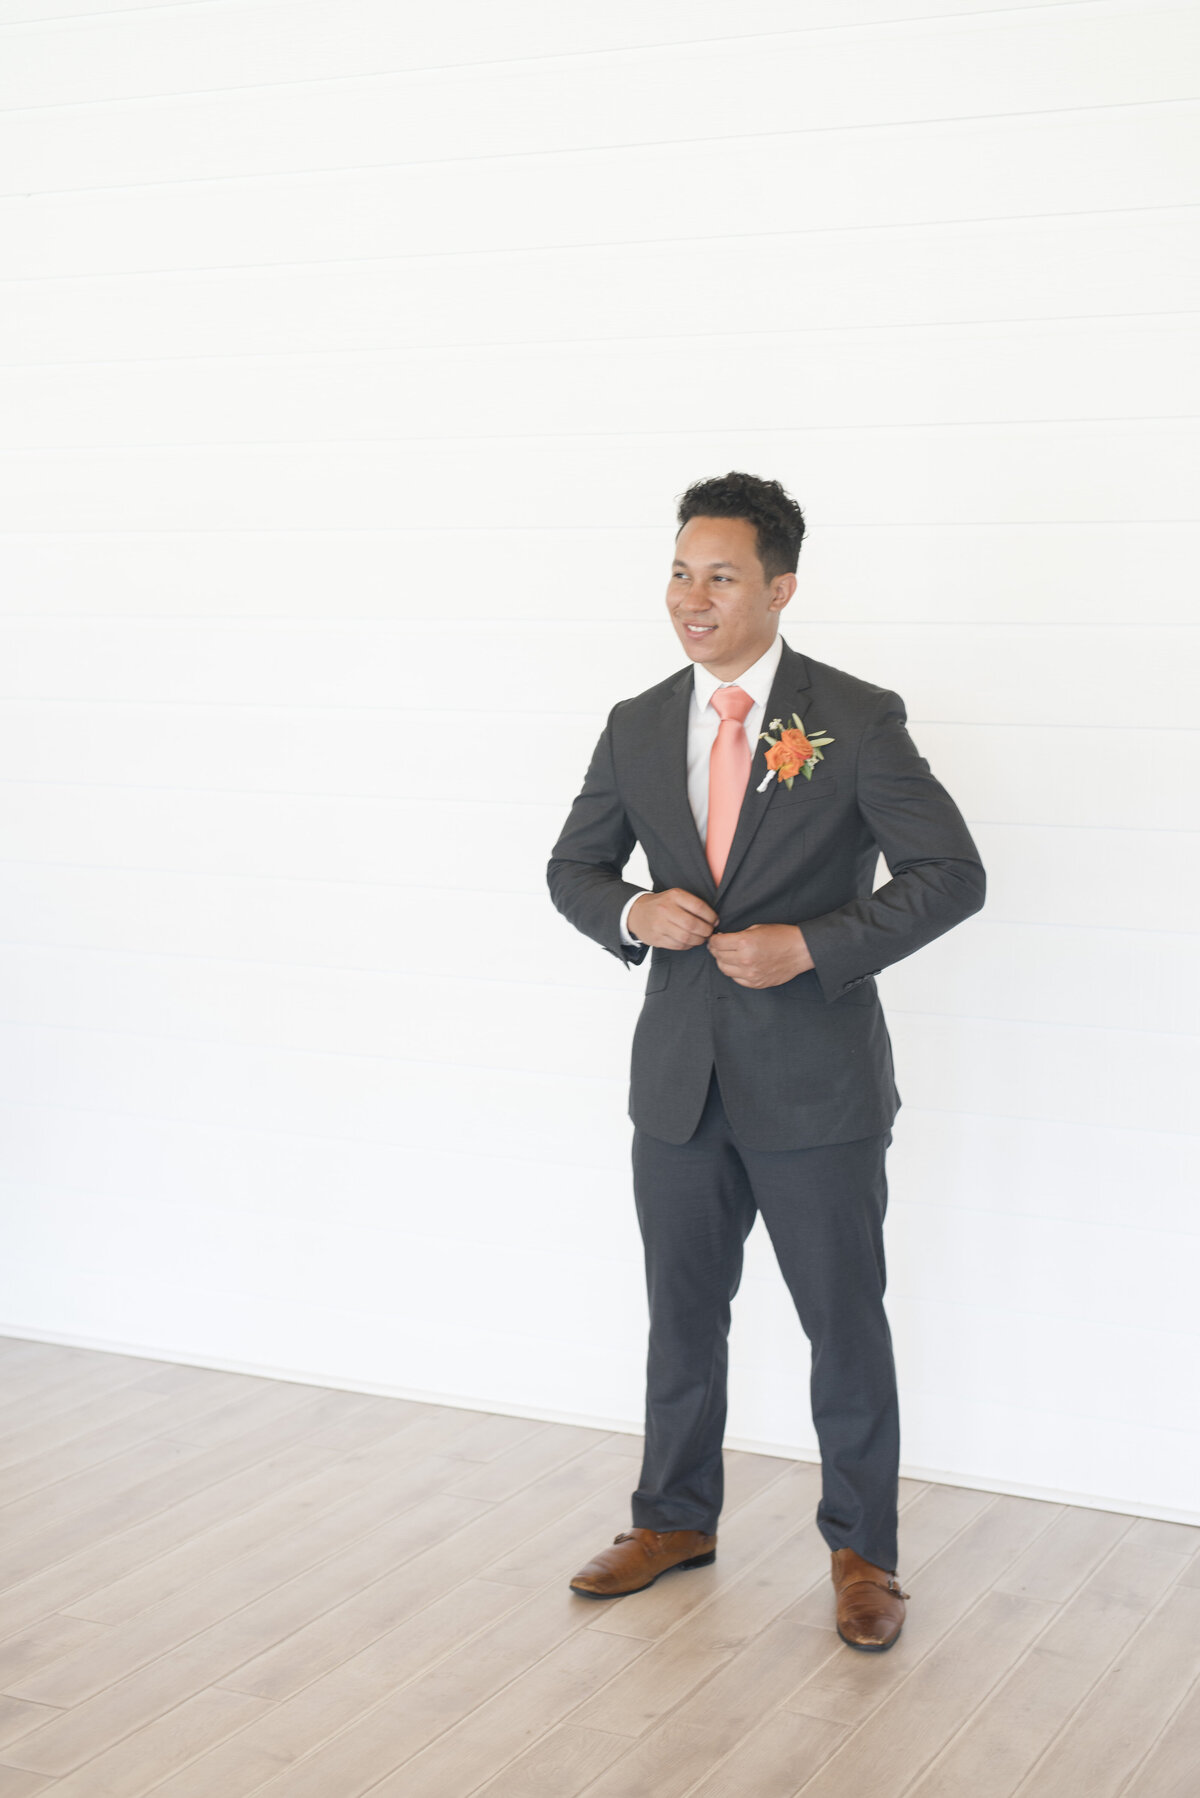 Groom standing for wedding photos for Fort Worth wedding